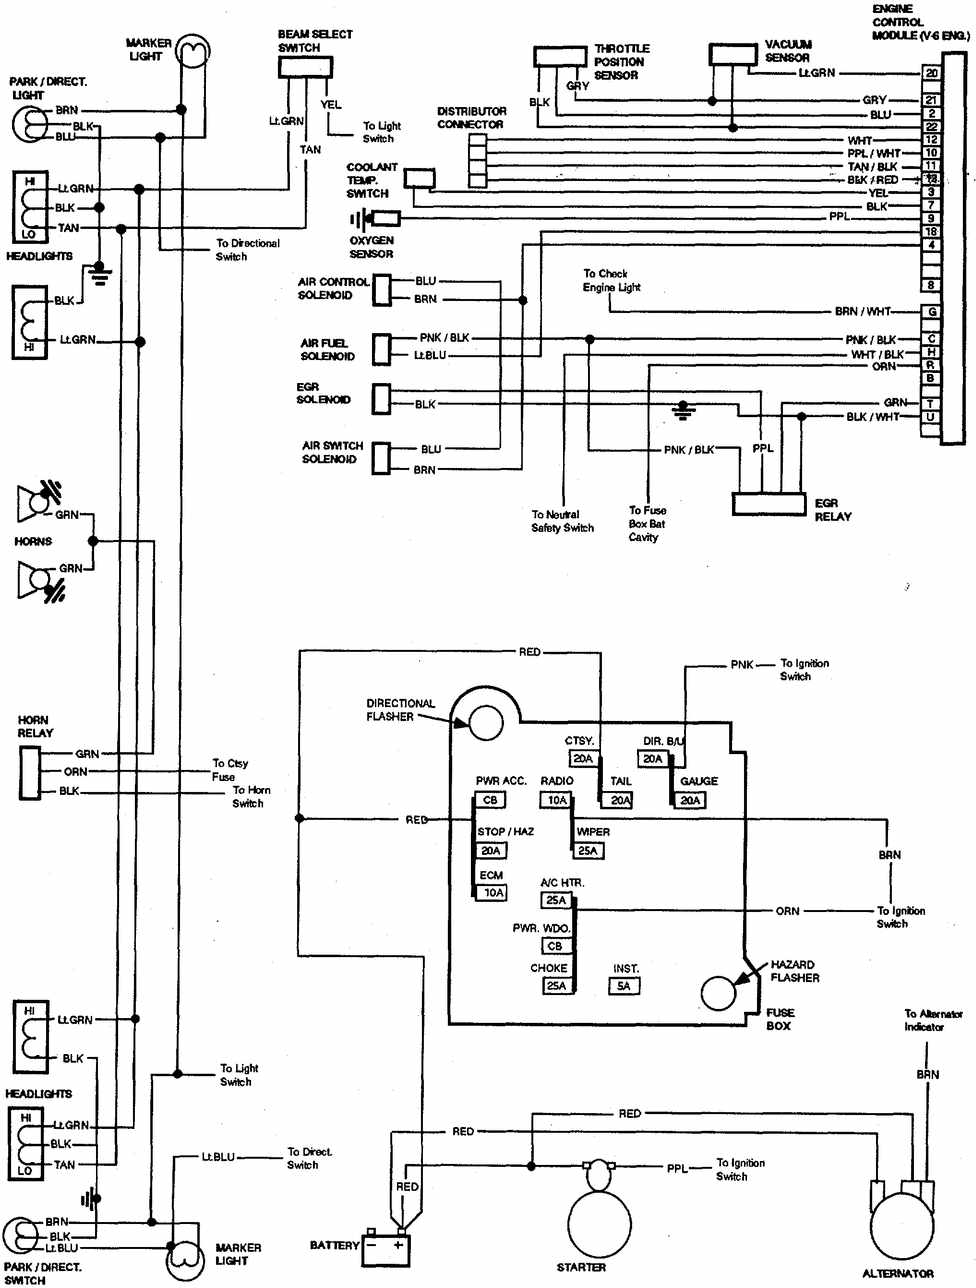 2001 dodge ram fuel pump wiring diagram